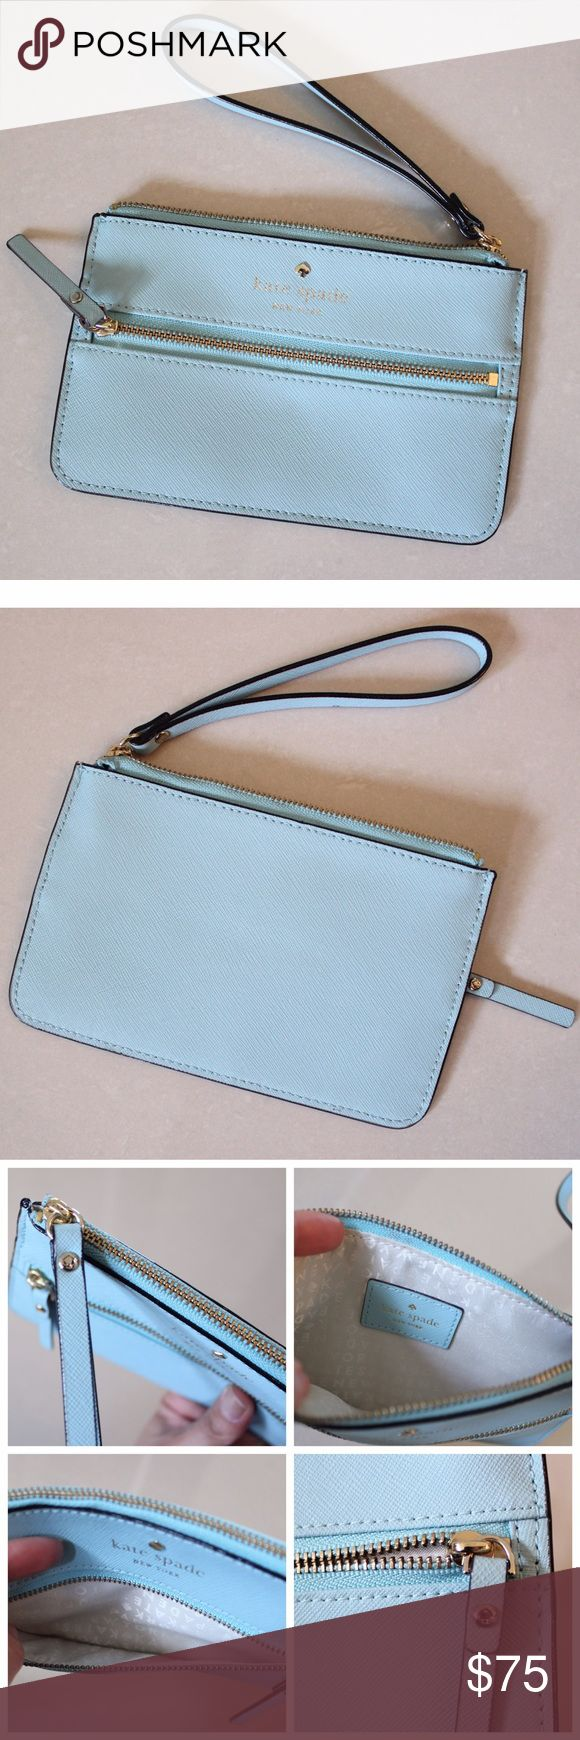 "KATE SPADE Mikas Pond Bee Baby Blue Wristlet Pre-owned in excellent conditions Retail $130 (new)  4 1/4"" (H) x 6 3/4"" (W)   MATERIAL Crosshatched Leather with matching trim 14-karat light gold plated hardware  DETAILS Wristlet with zip top closure Exterior zipper pocket  🚫No trades please. 🚭 Smoke free home. If you have any questions about this item I will be more than happy to answer them. kate spade Bags Clutches & Wristlets"